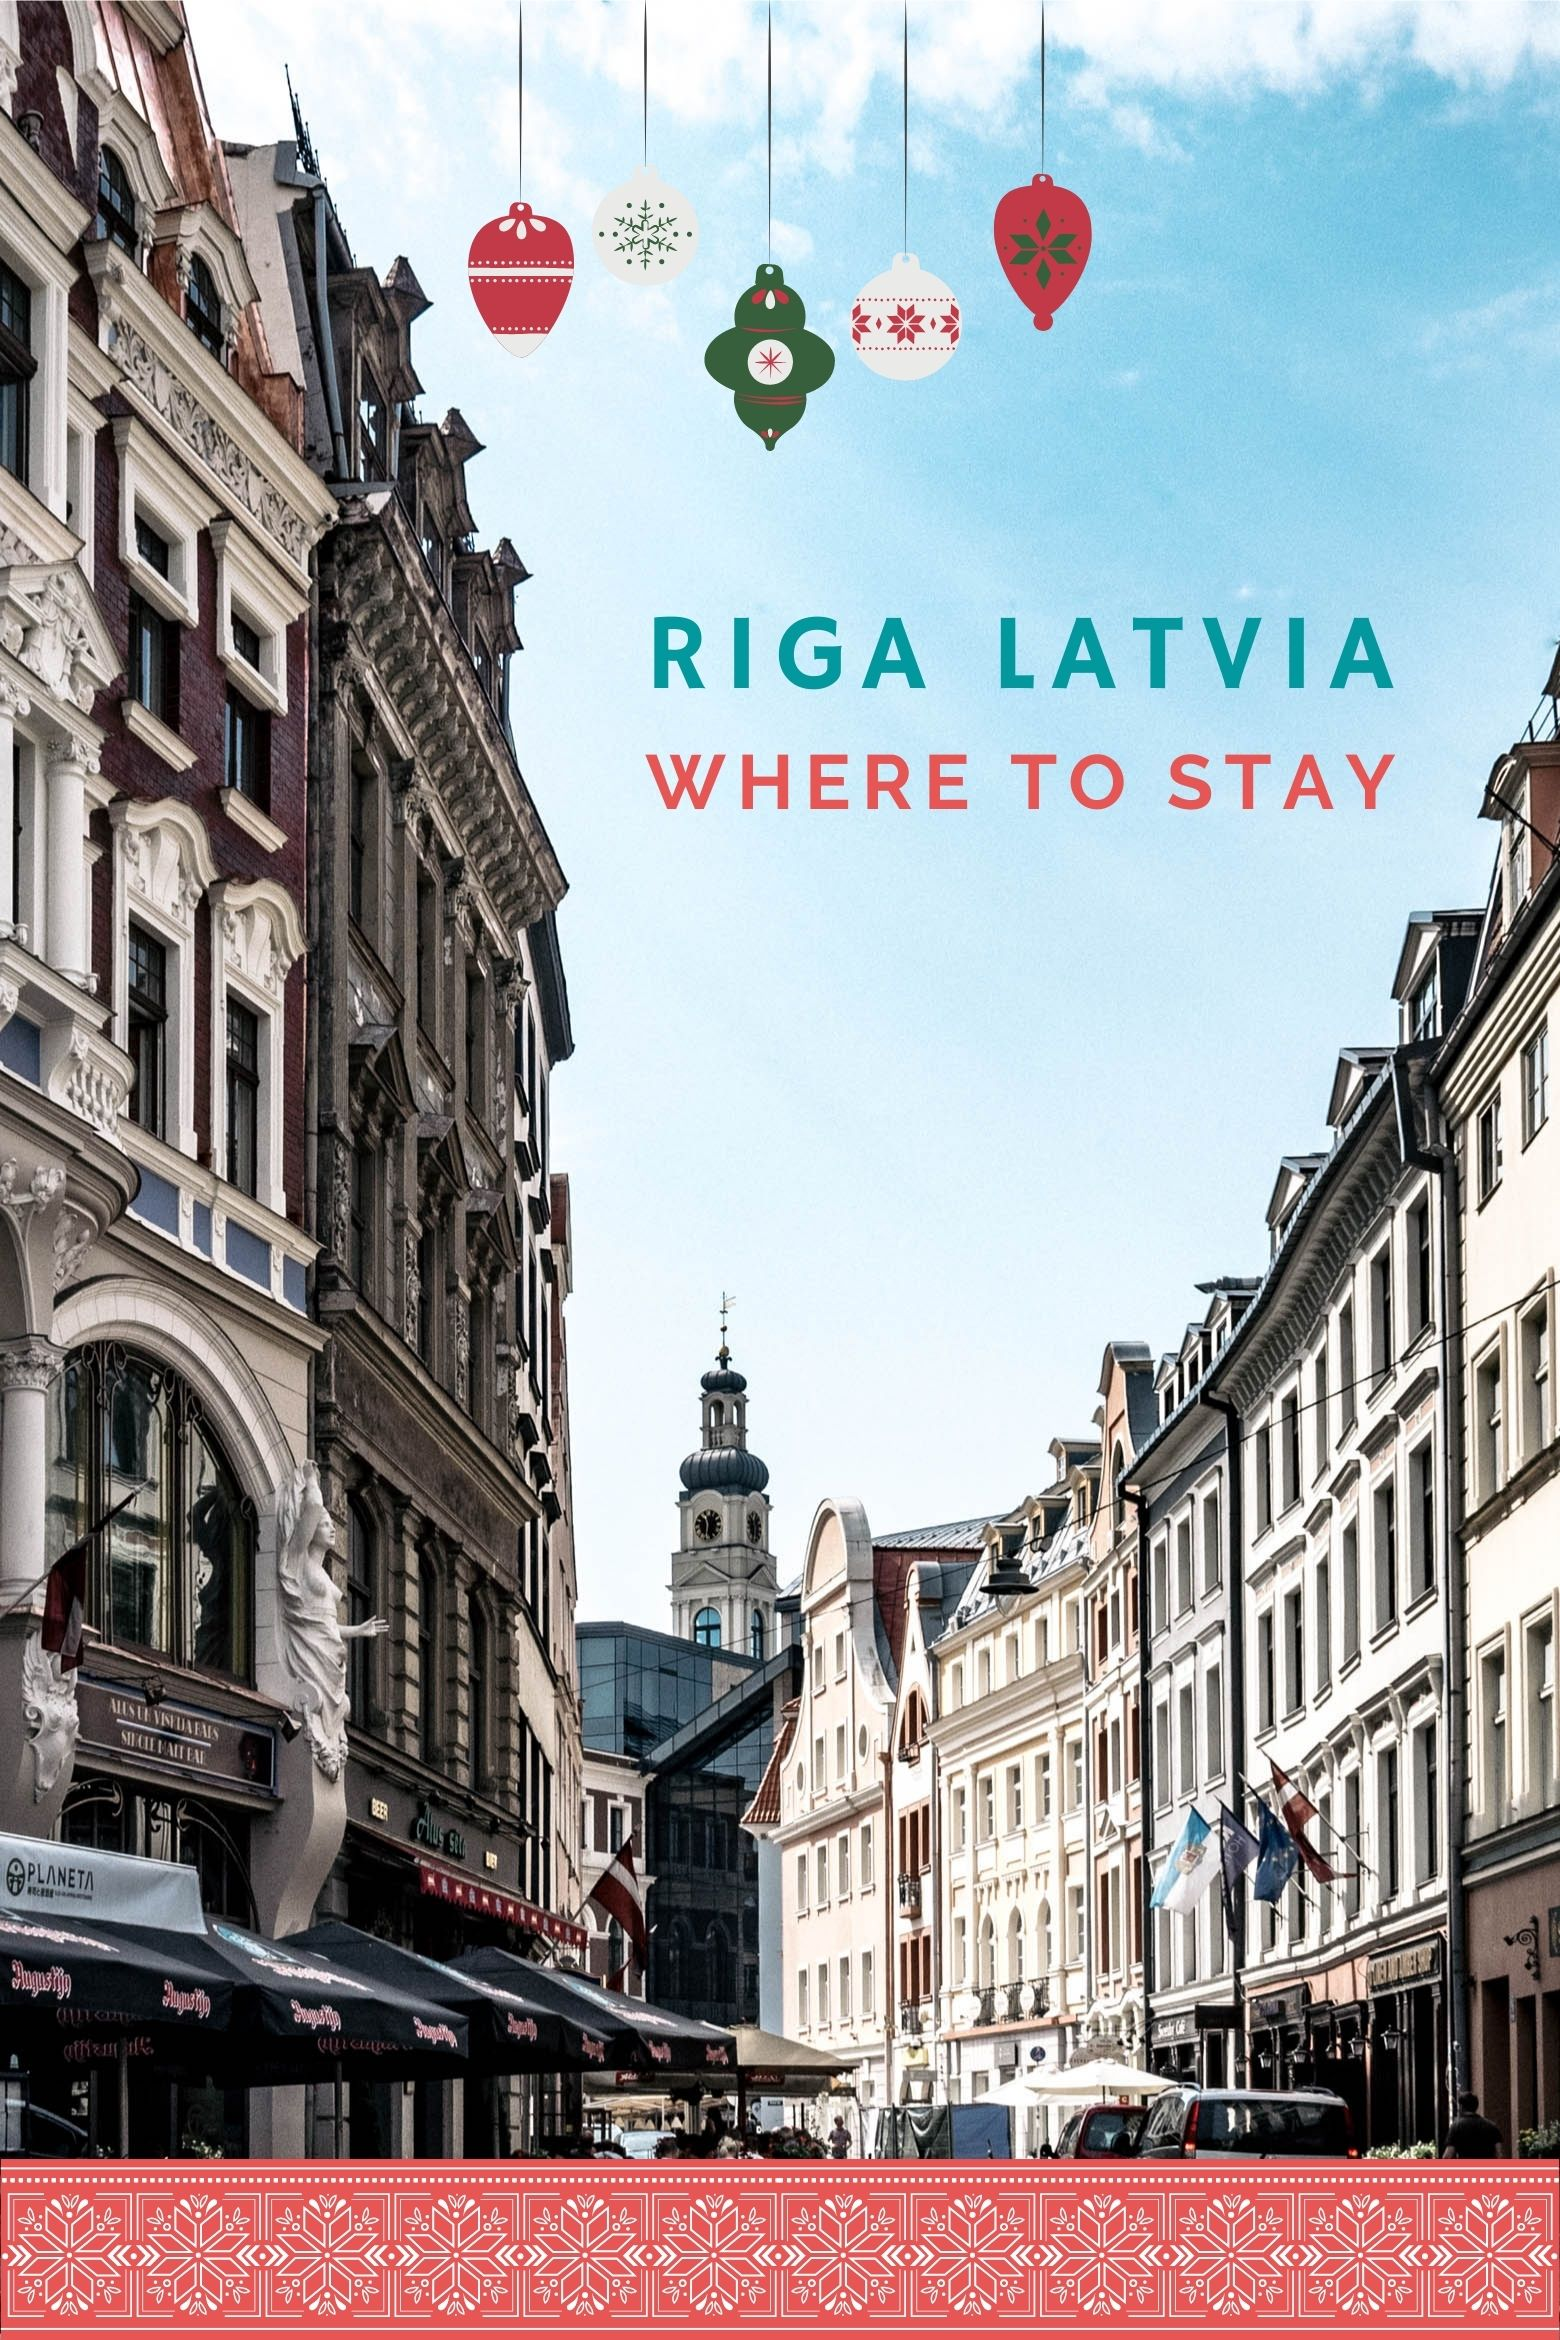 Riga Old Town with blue skies